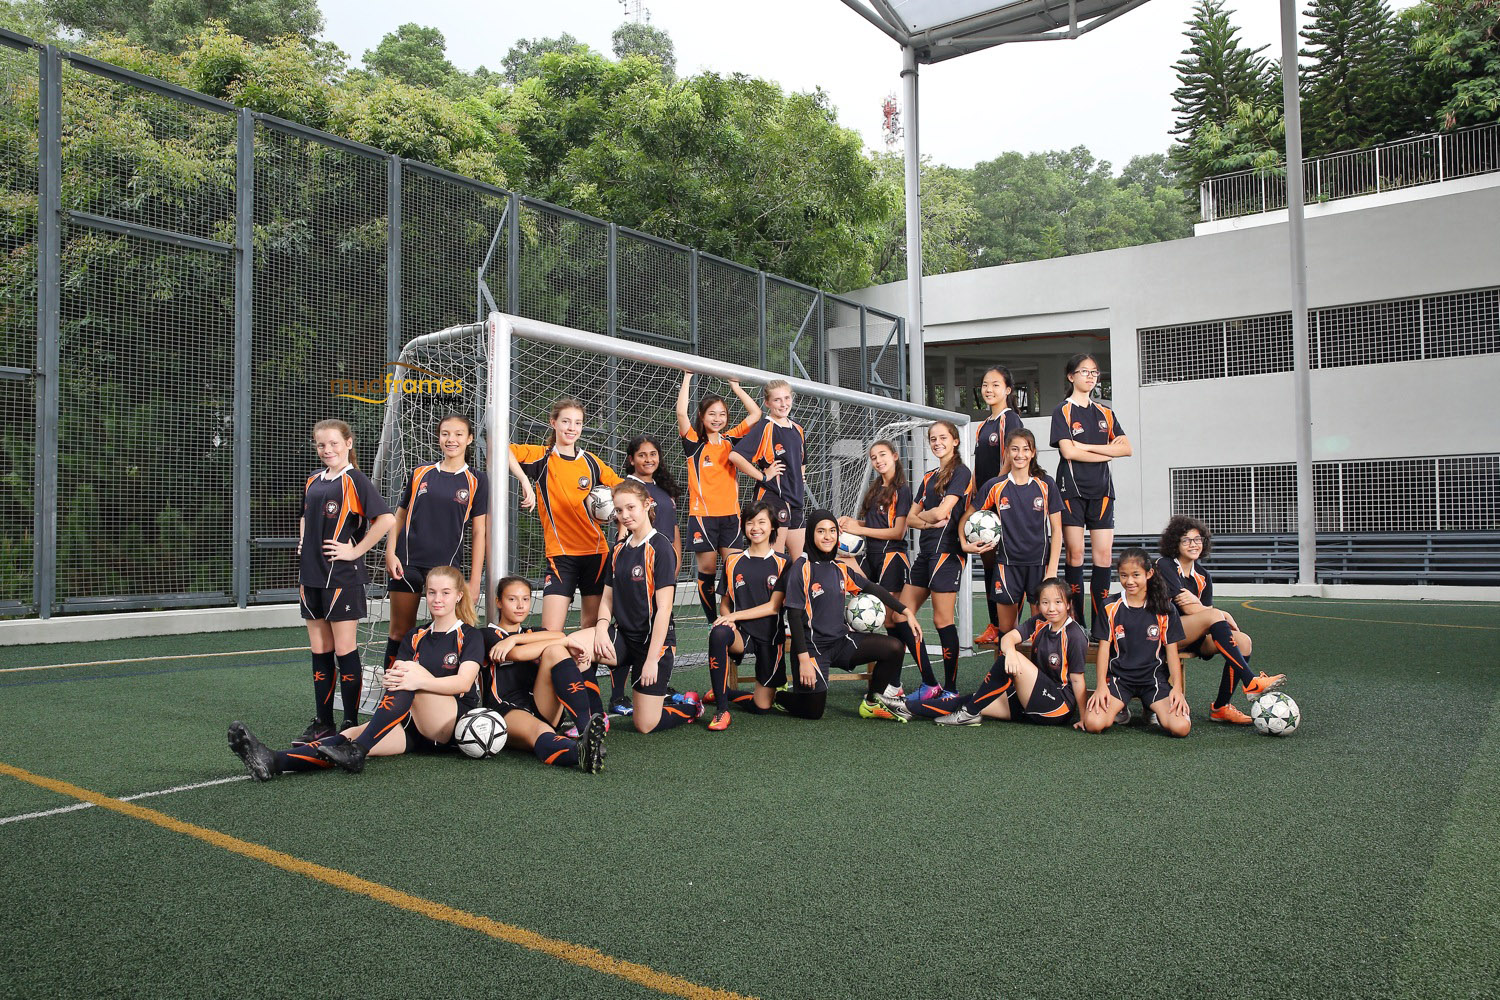 BSKL Football Group Shot